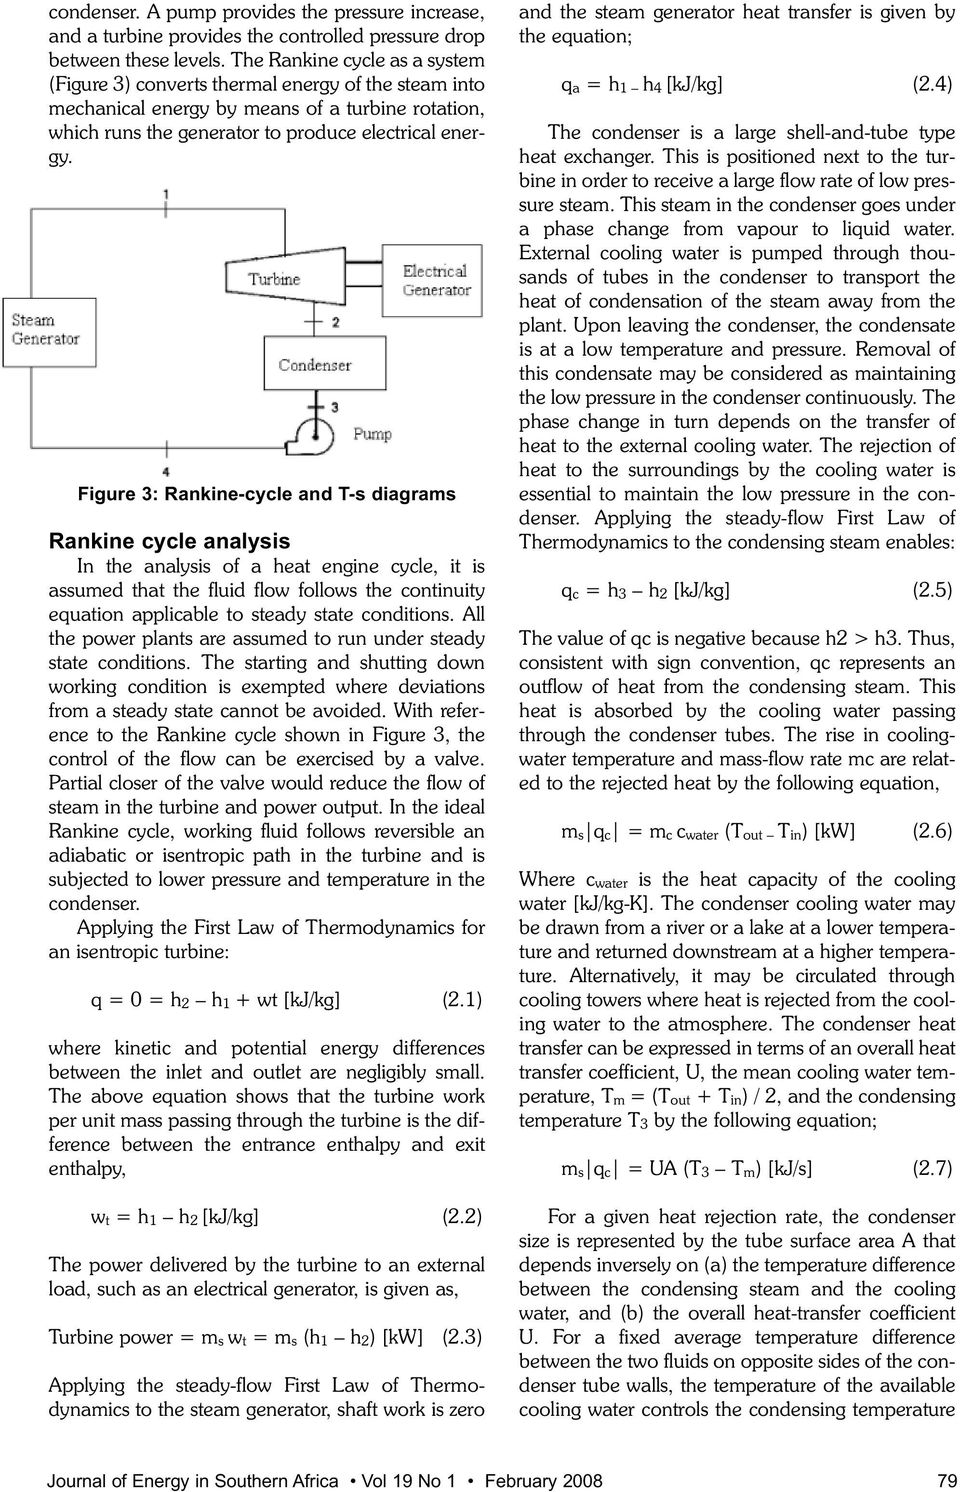 An Analysis Of A Thermal Power Plant Working On Rankine Cycle Electric Generator Diagram Principle Figure 3 And T S Diagrams In The